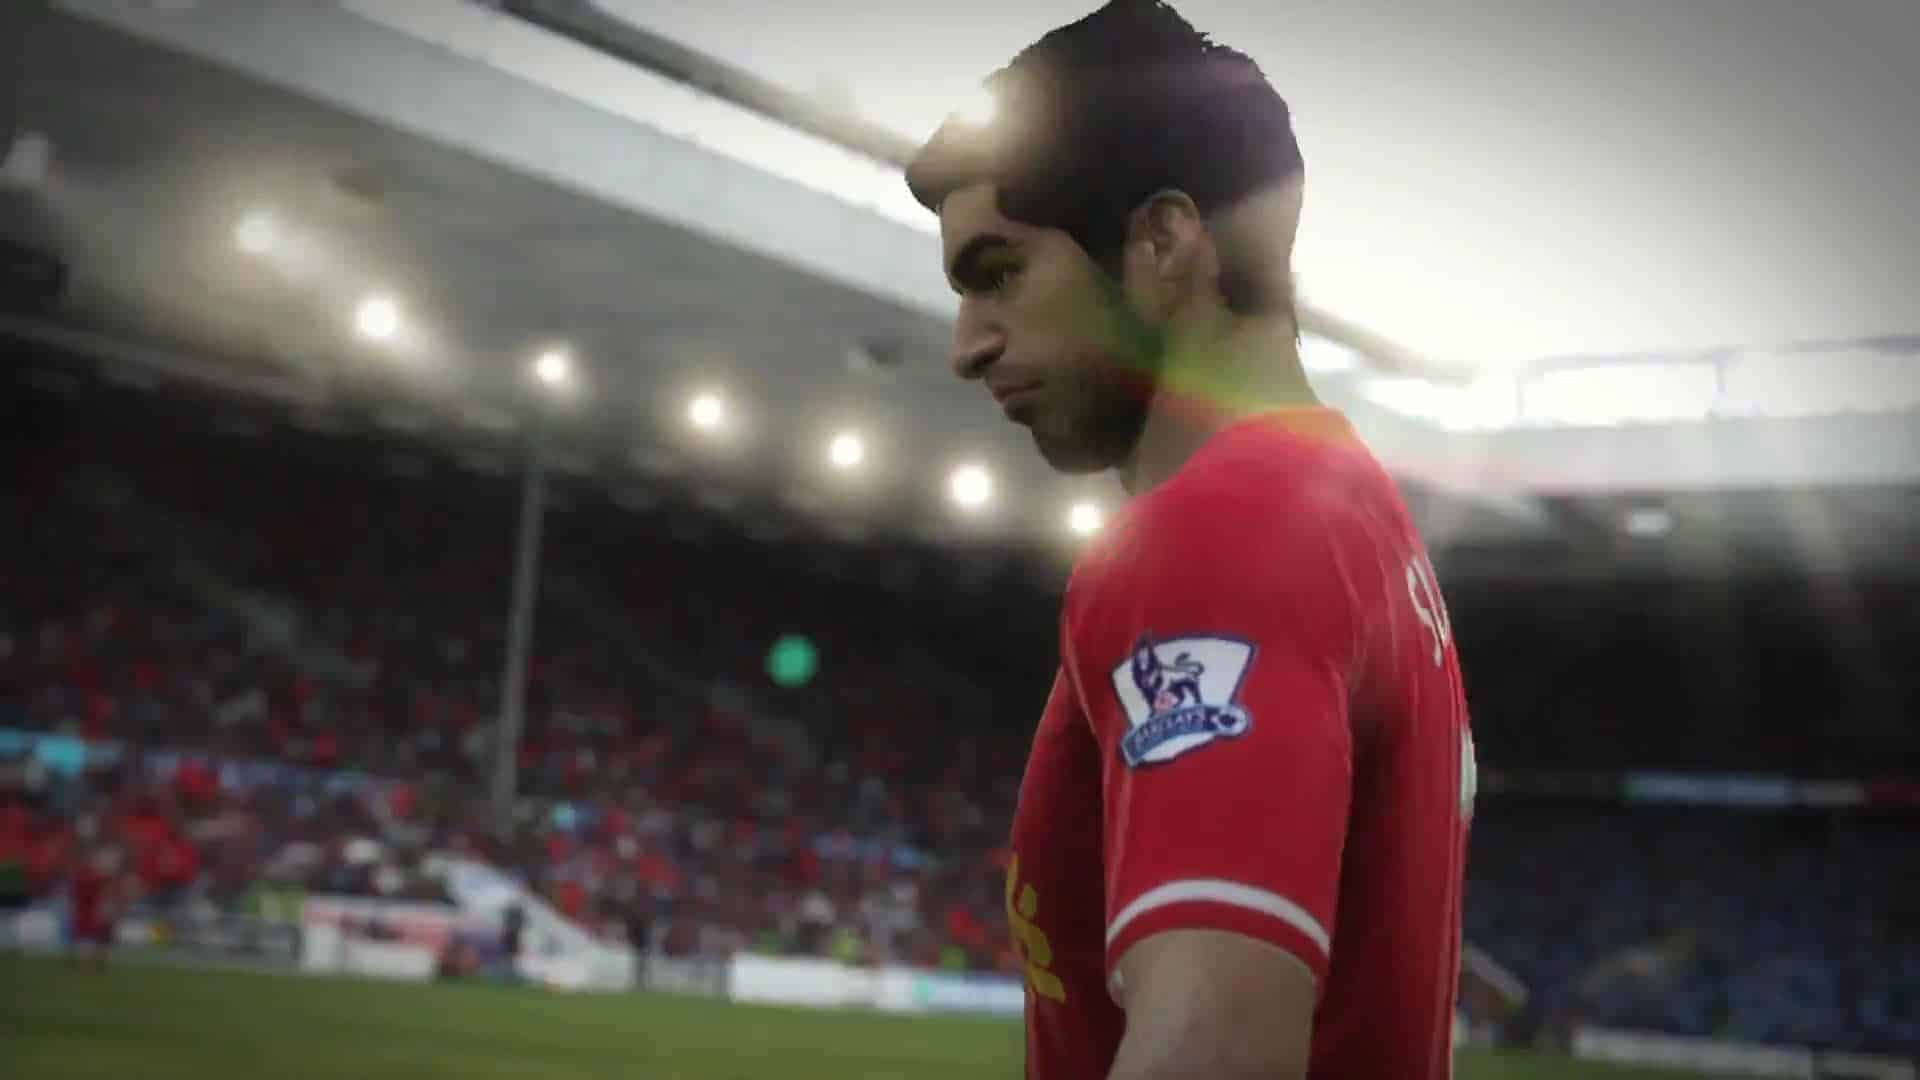 Luis Suarez Video Capture